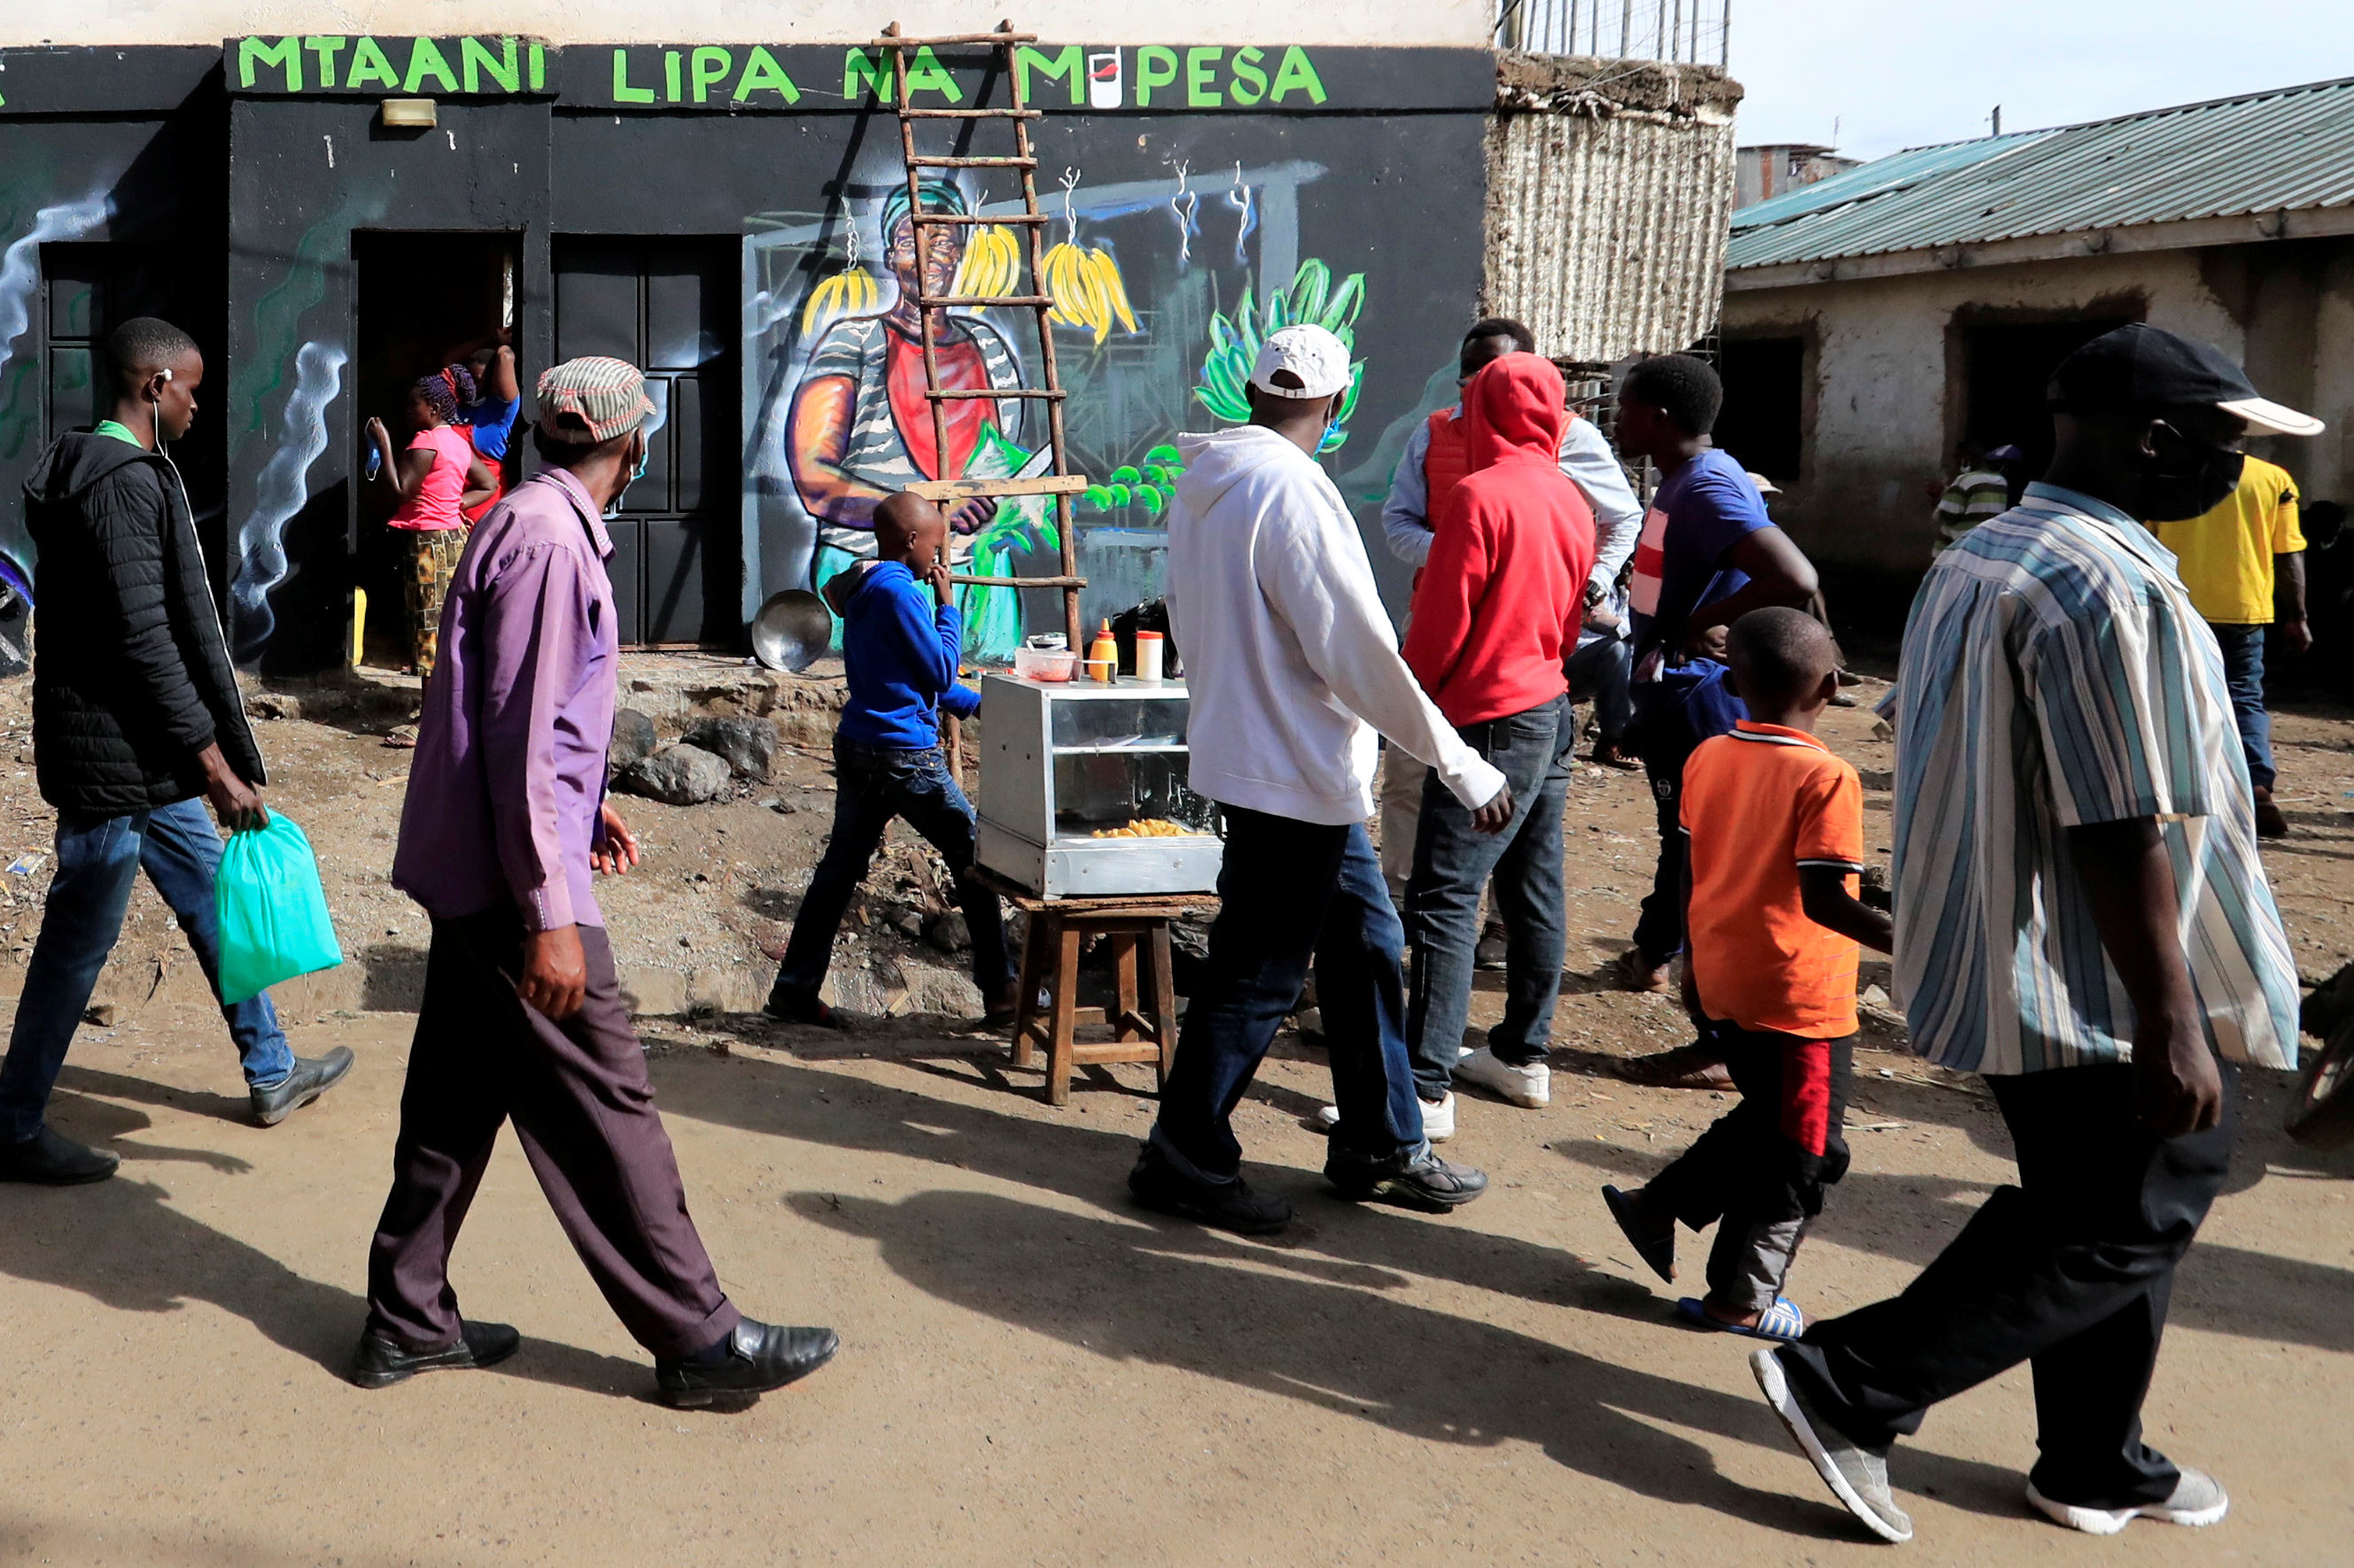 Residents walk past a mural advocating for retail M-Pesa mobile phone cashless payments as a measure against the spread of the coronavirus disease (COVID-19) in Nairobi, Kenya April 19, 2020. Picture taken April 19, 2020. REUTERS/Thomas Mukoya - RC288G9RF2H1